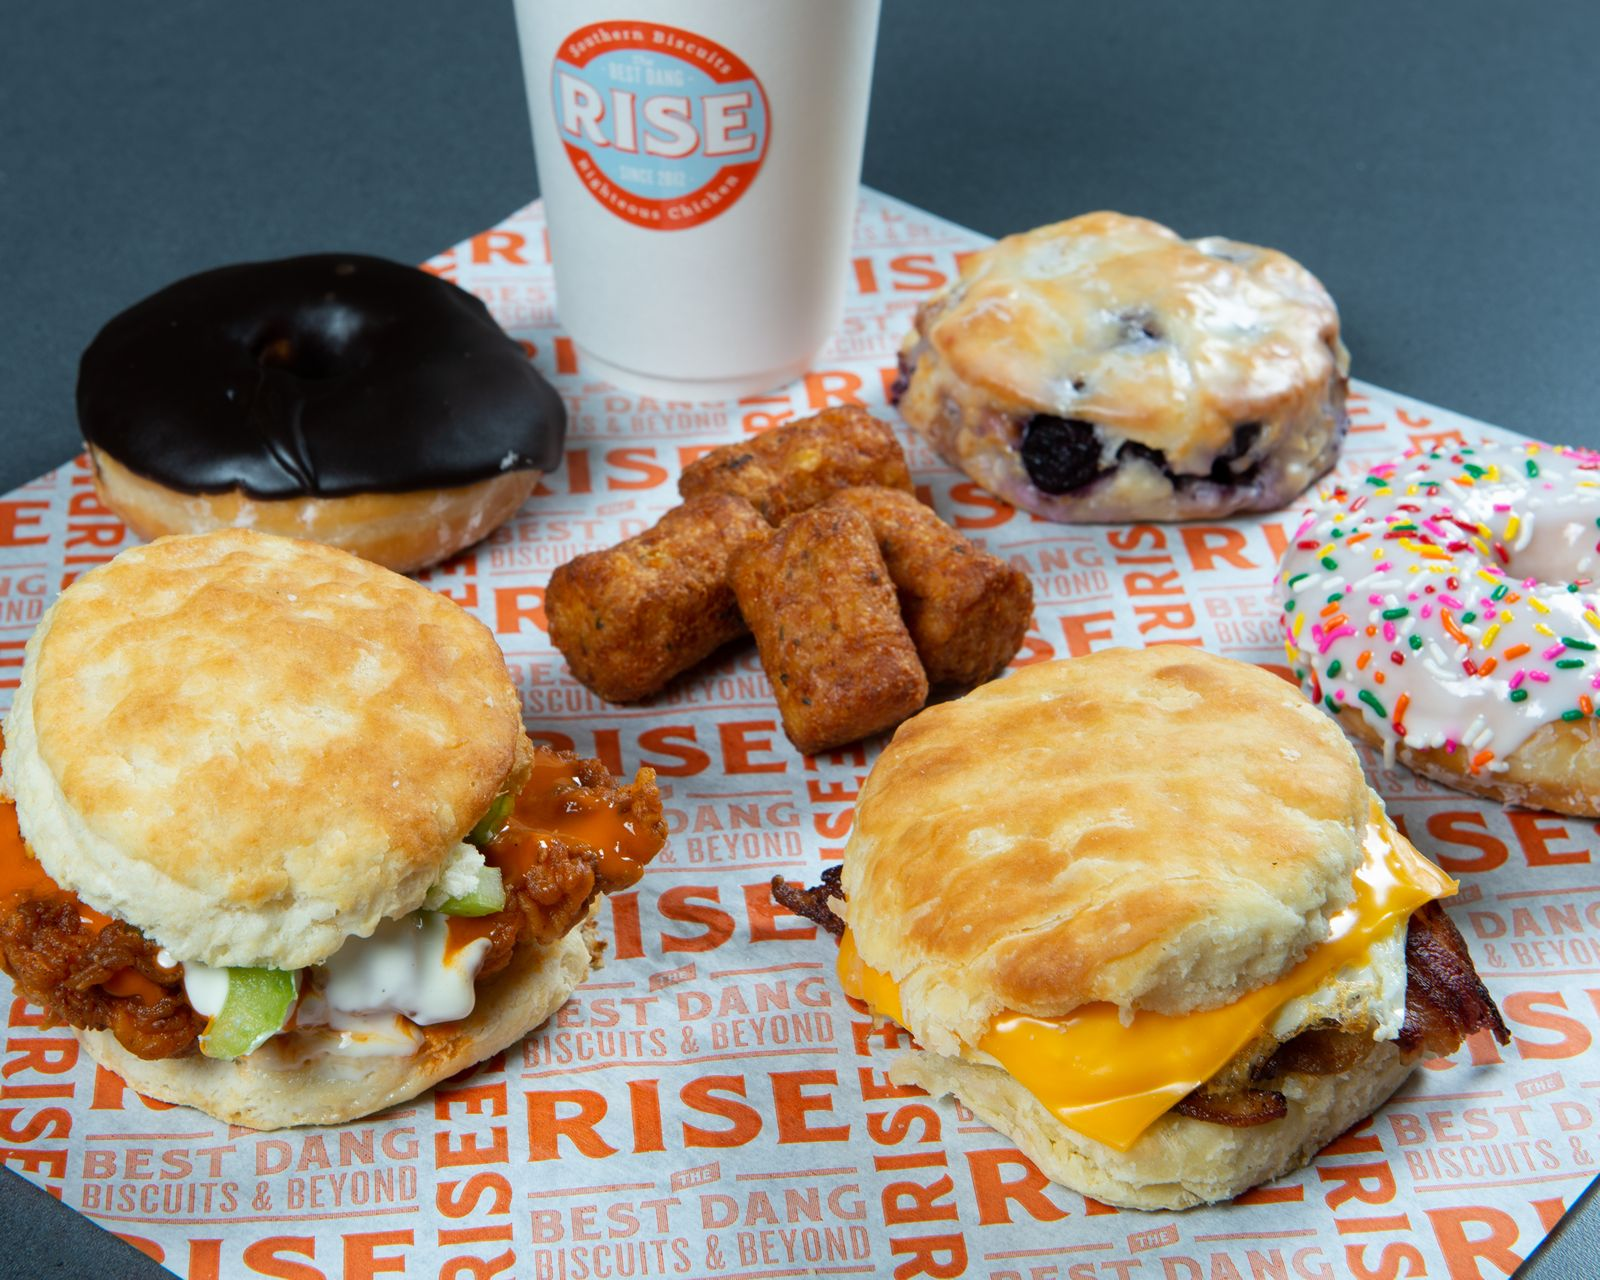 Savvy Biscuit Chain Plots Virginia Takeover with 25 Unit Franchise Expansion Deal